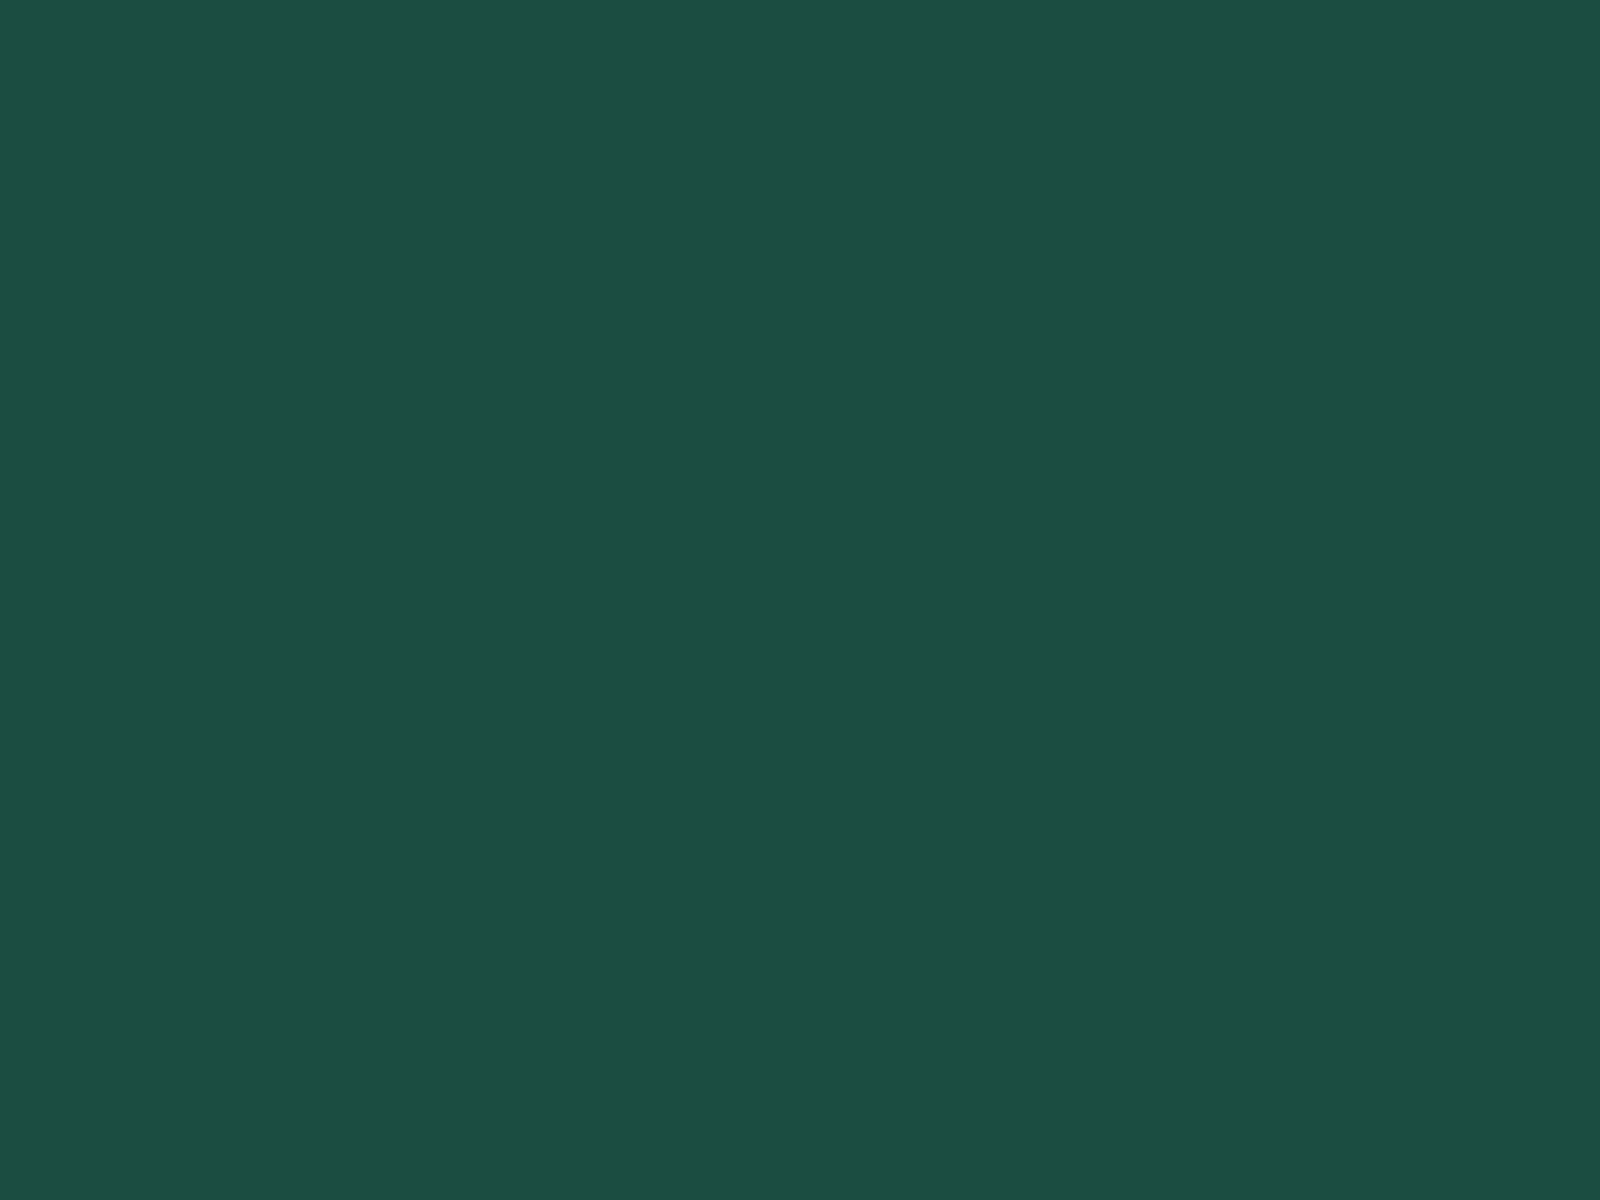 1600x1200 English Green Solid Color Background